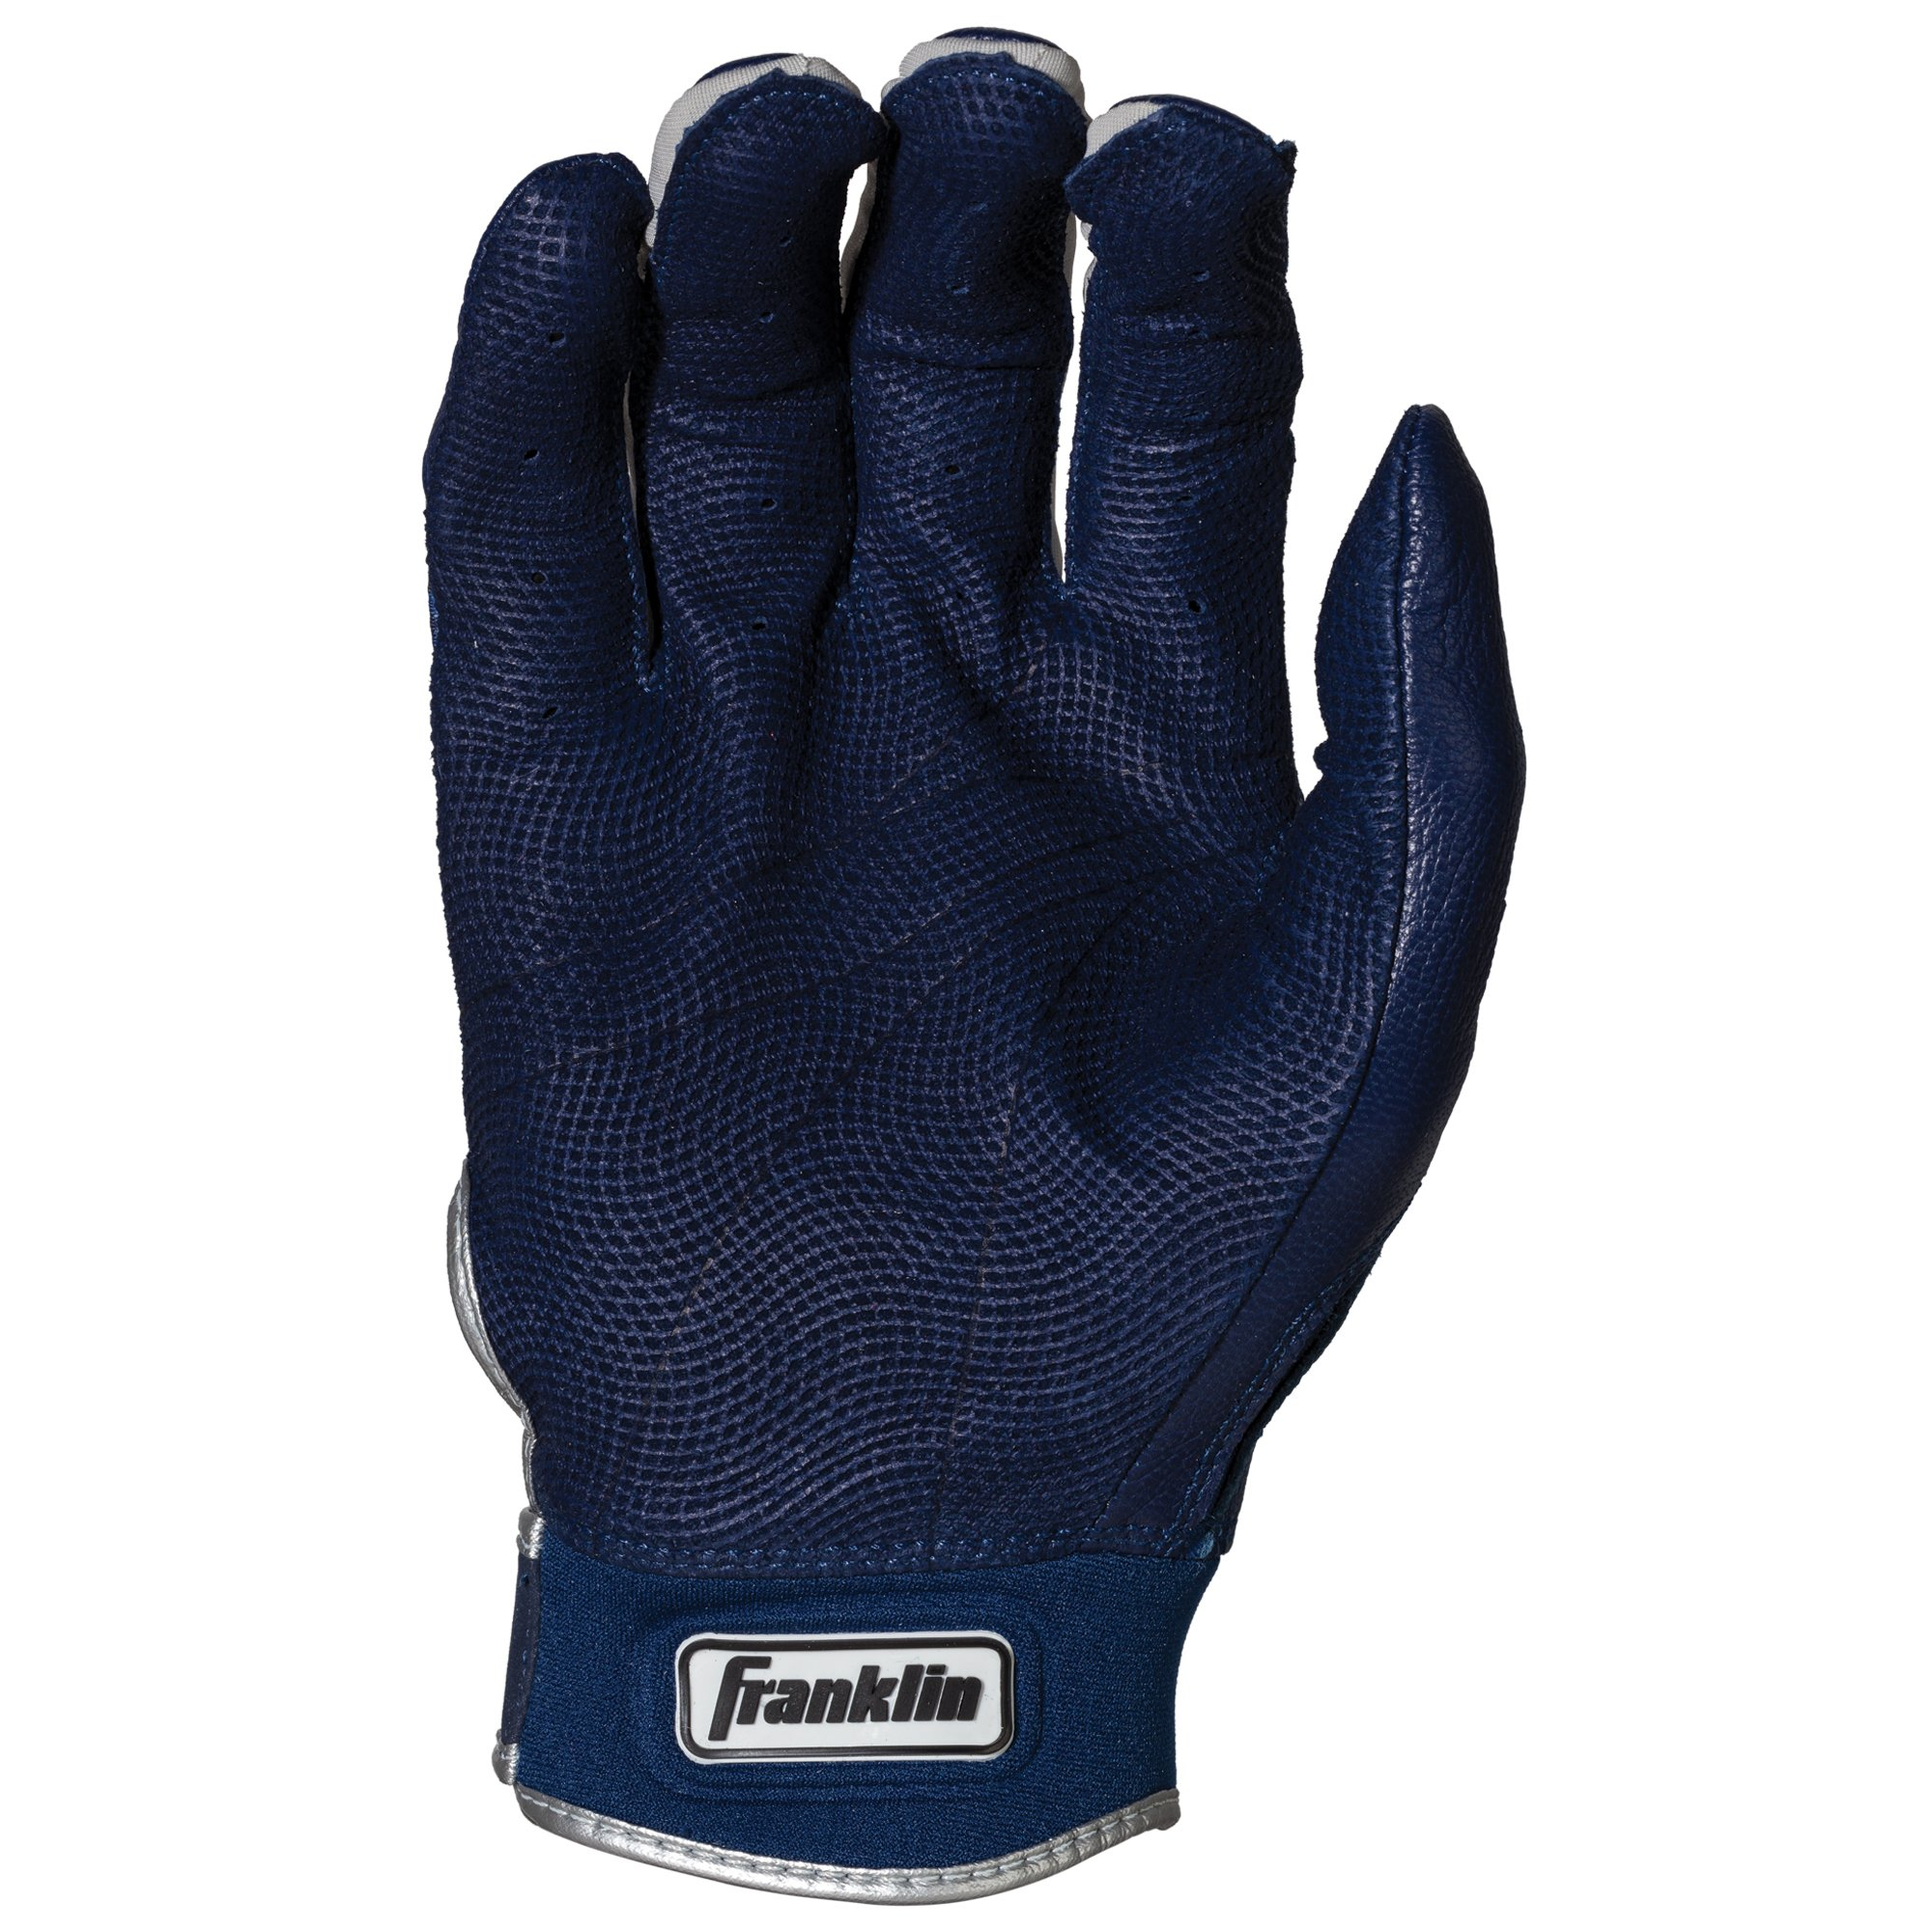 Franklin Sports CFX Pro Digi Series Batting Gloves Navy/Navy Camo Adult Small by Franklin Sports (Image #3)